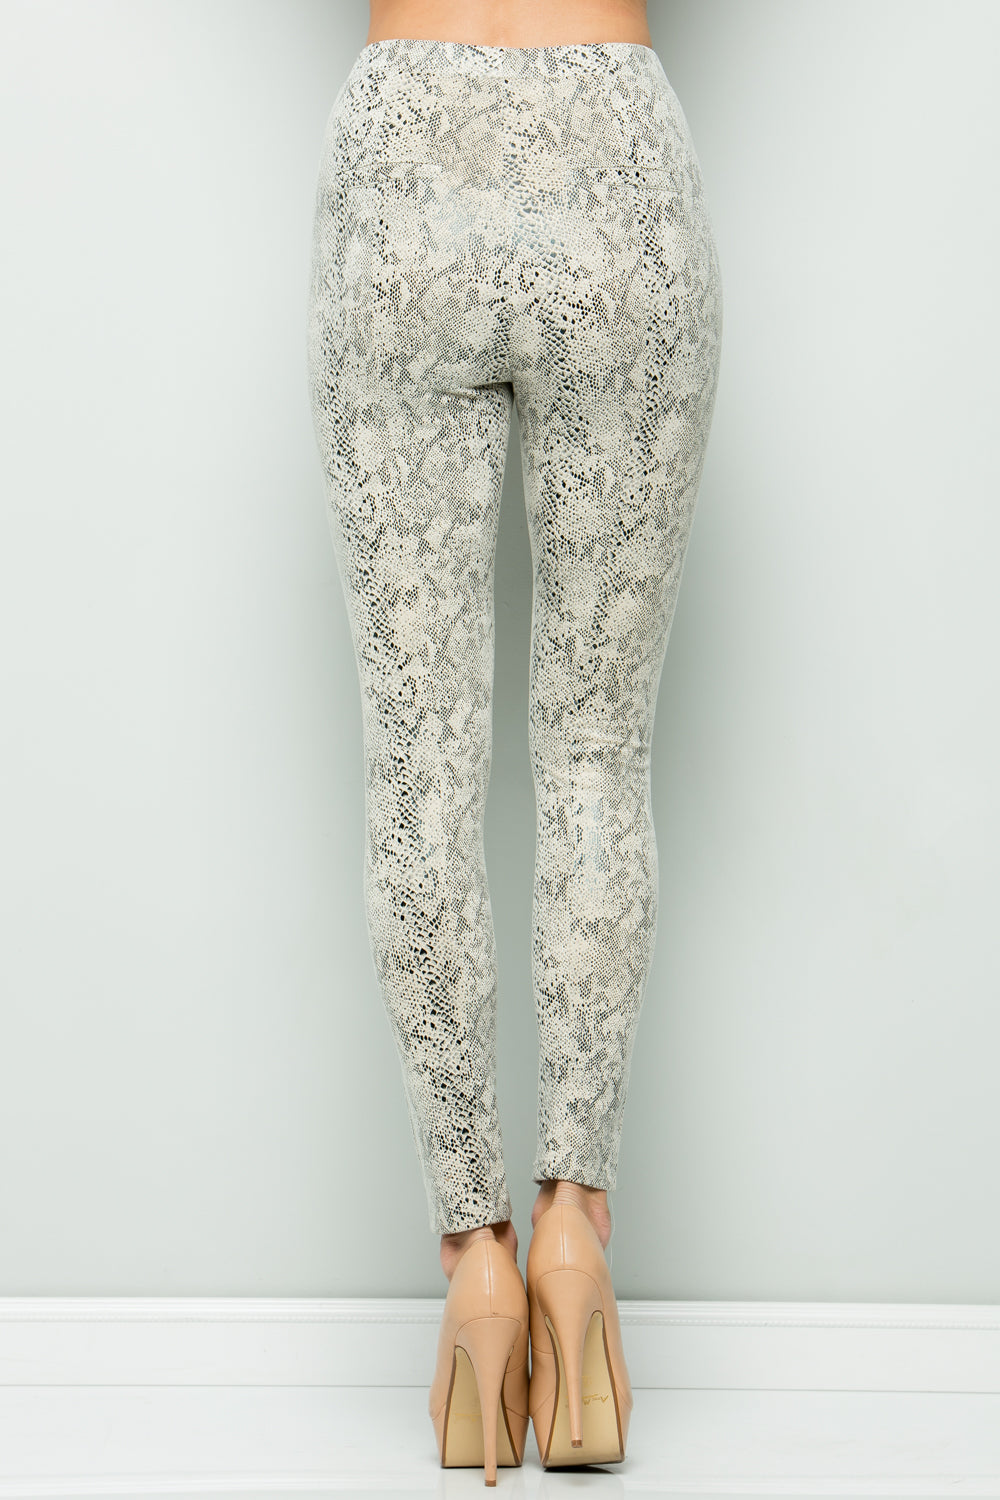 P7045 Snake Skin Leggings - PURPLE GREY